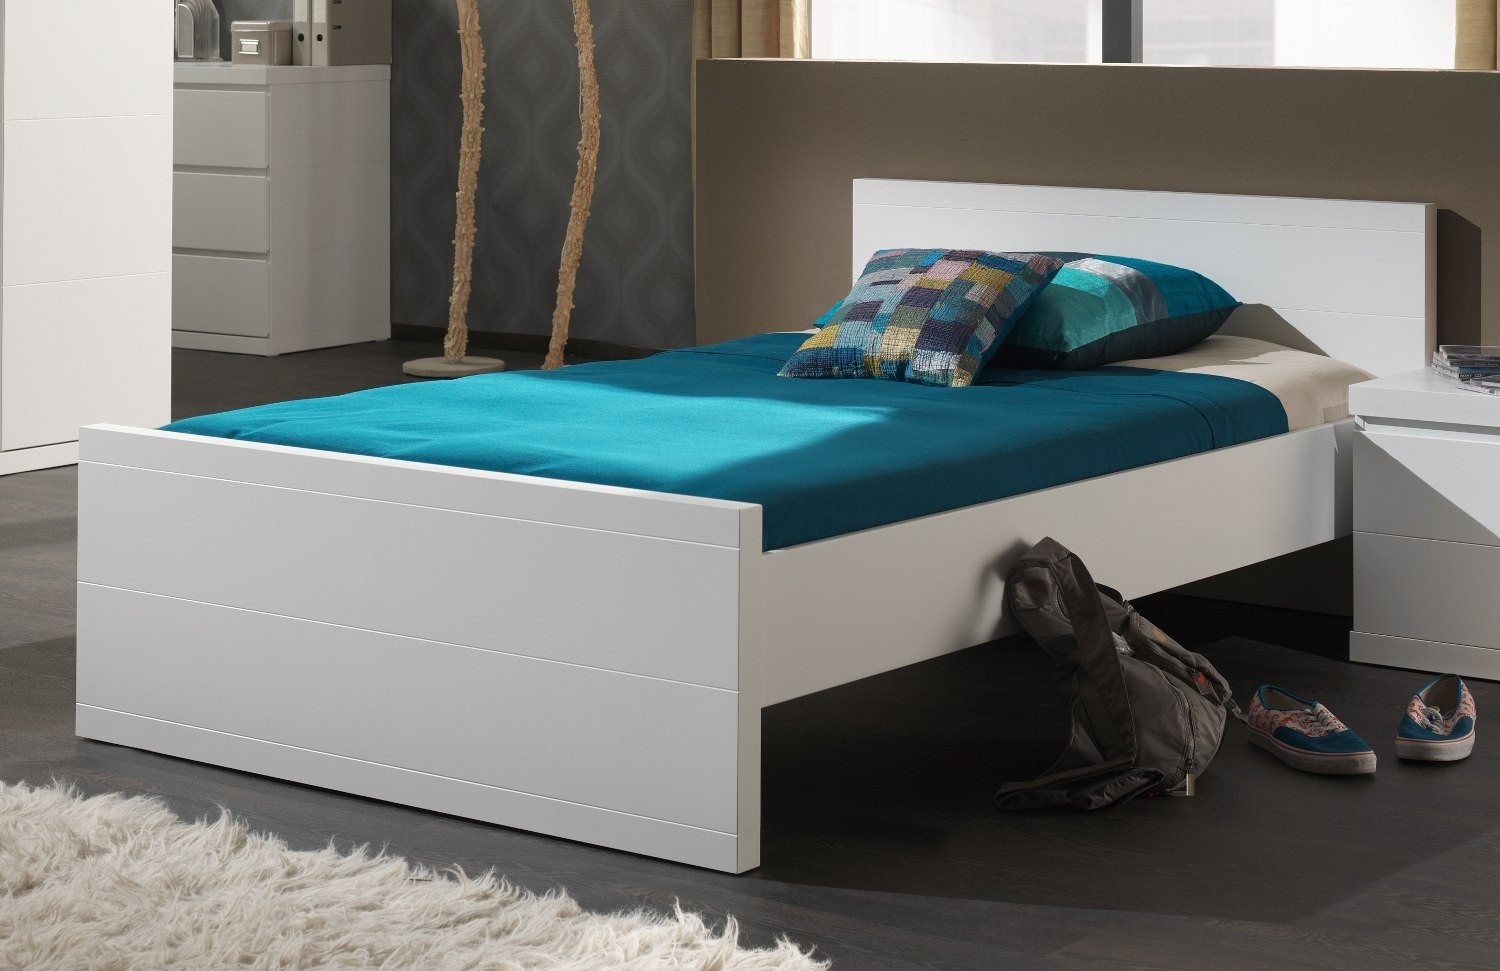 einzelbett lara kinderbett jugendbett mit lattenrost 120 x 200 weiss 4061419027473 ebay. Black Bedroom Furniture Sets. Home Design Ideas